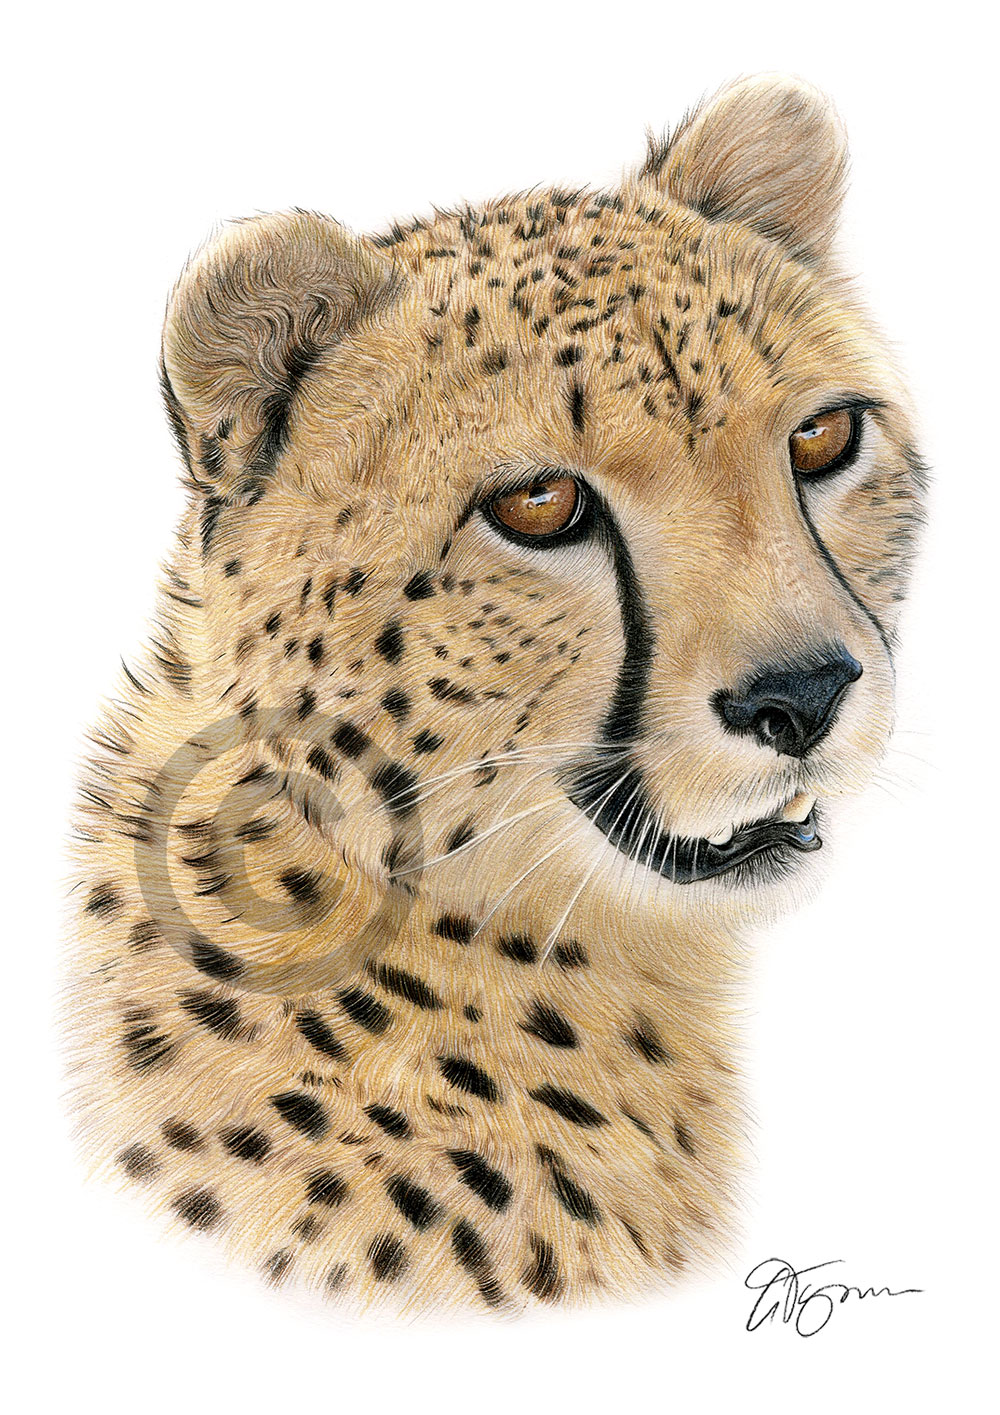 Cheetah colour pencil drawing by artist Gary Tymon